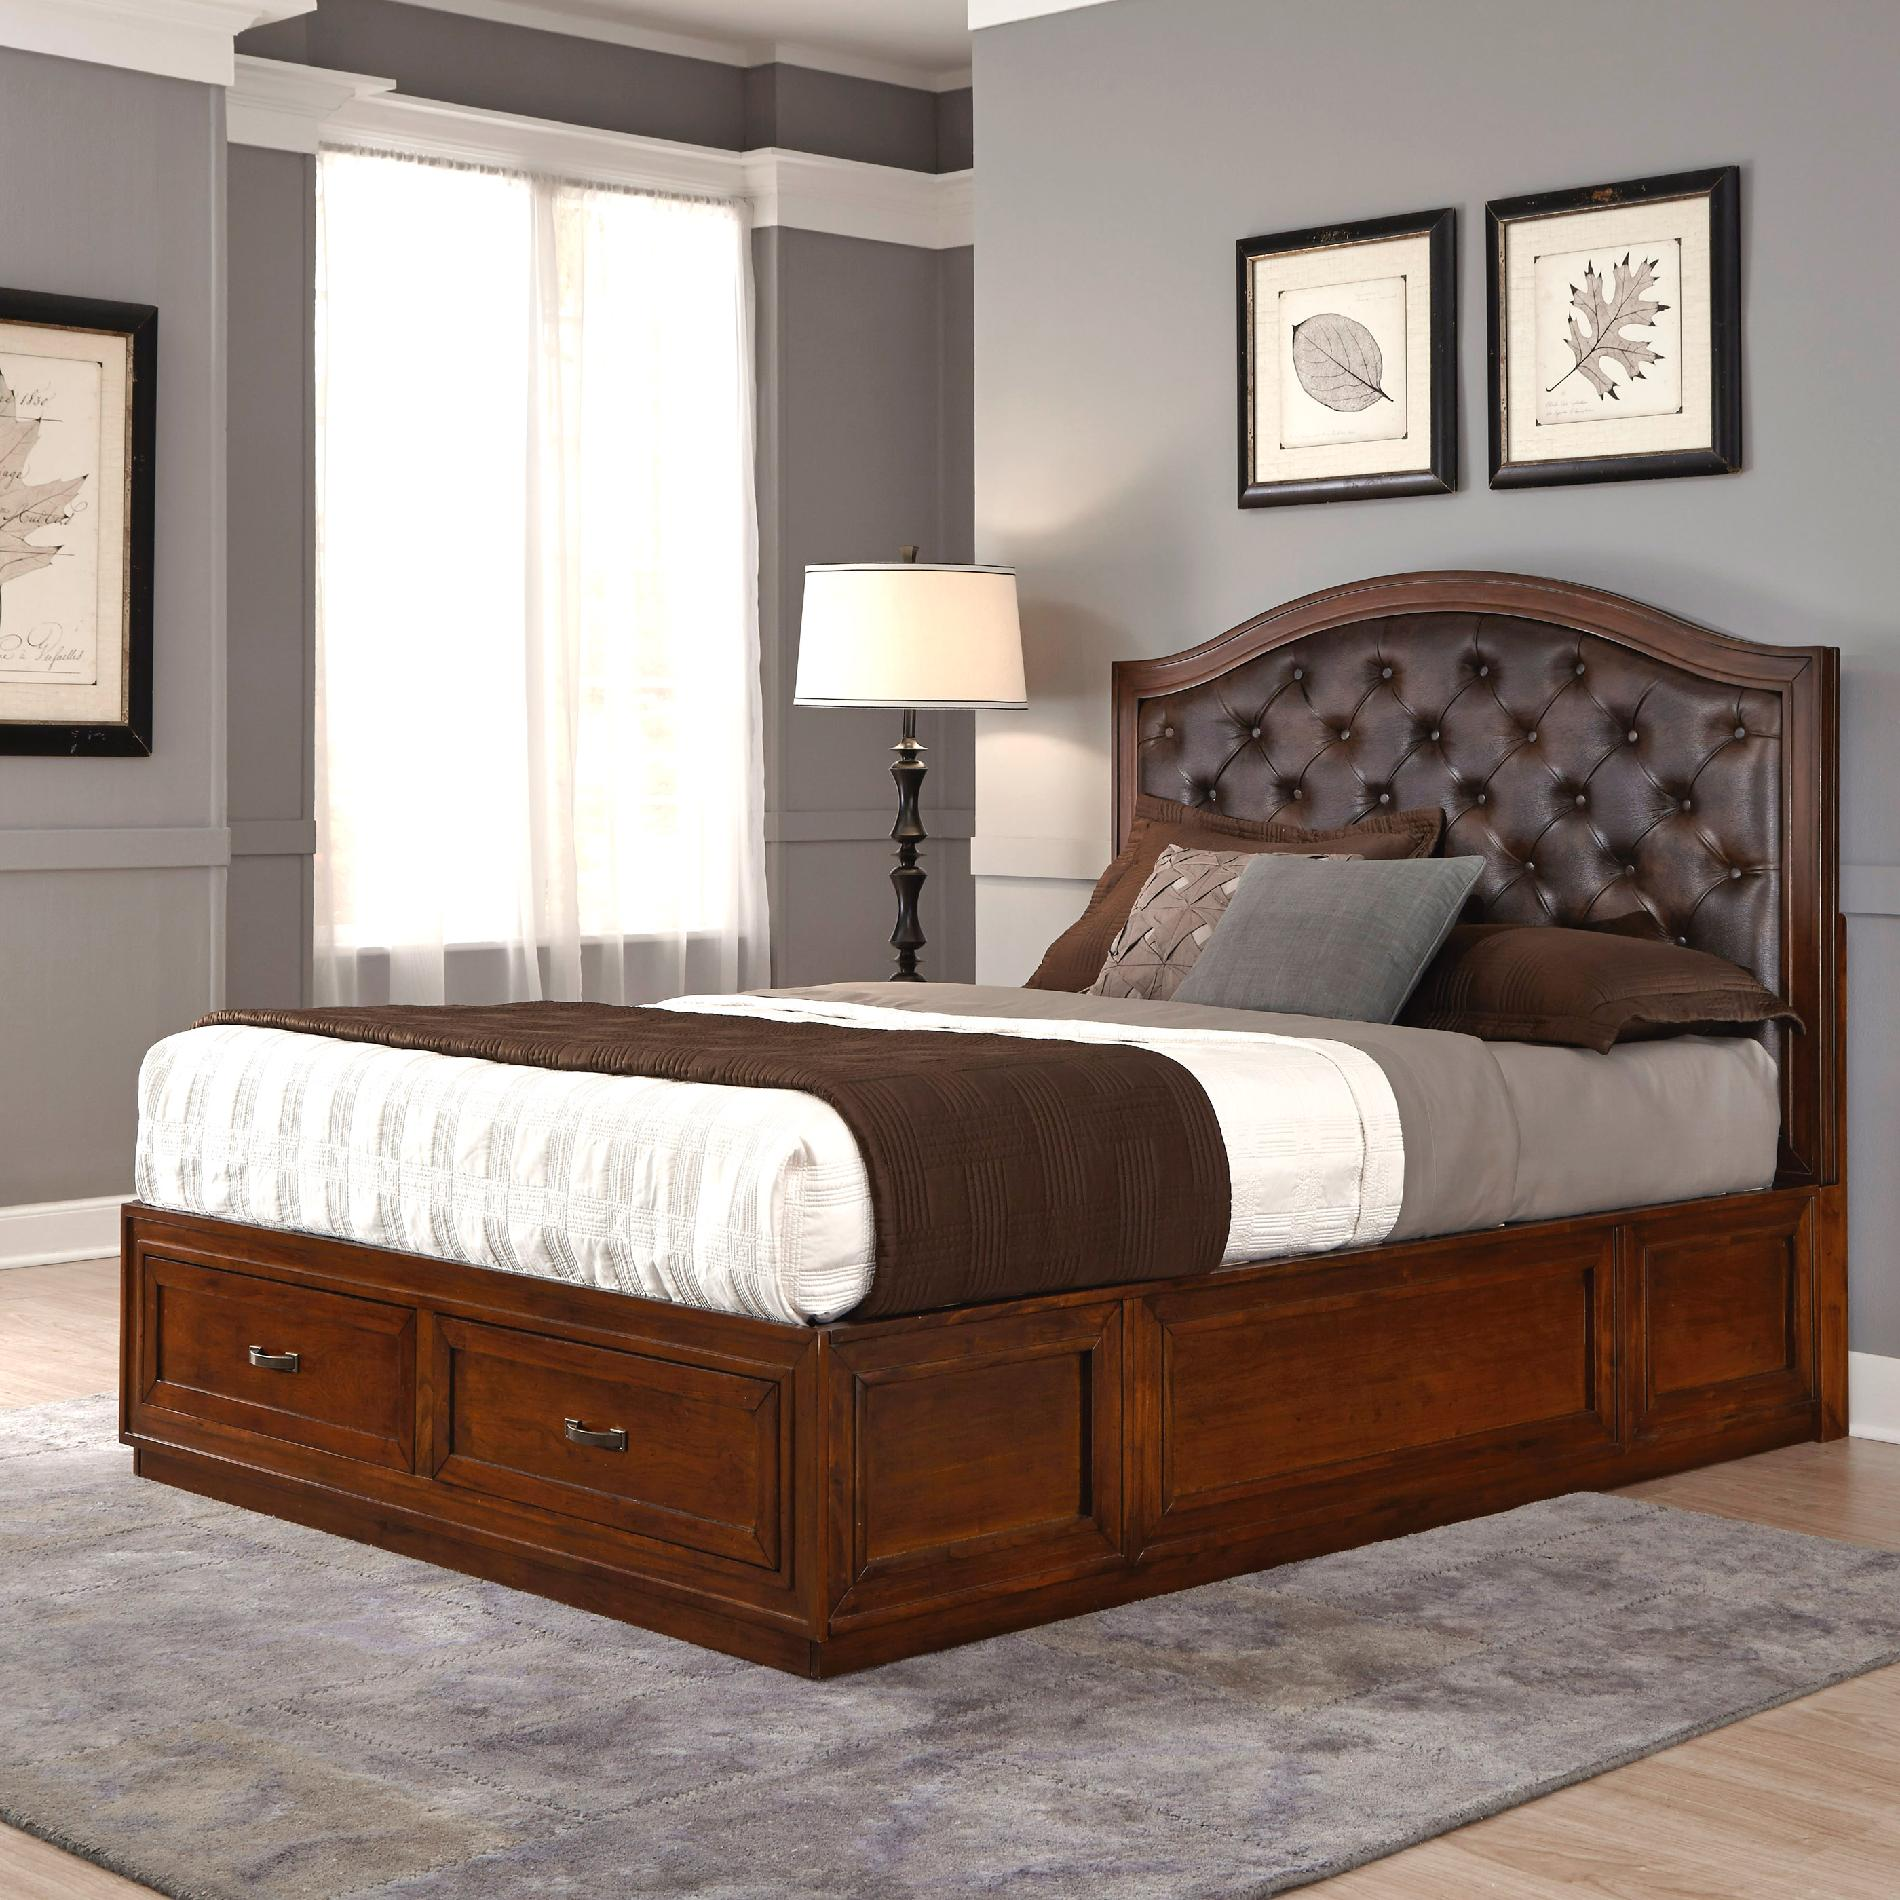 Home Styles Duet King Tufted Diamond Camelback Bed Brown ...